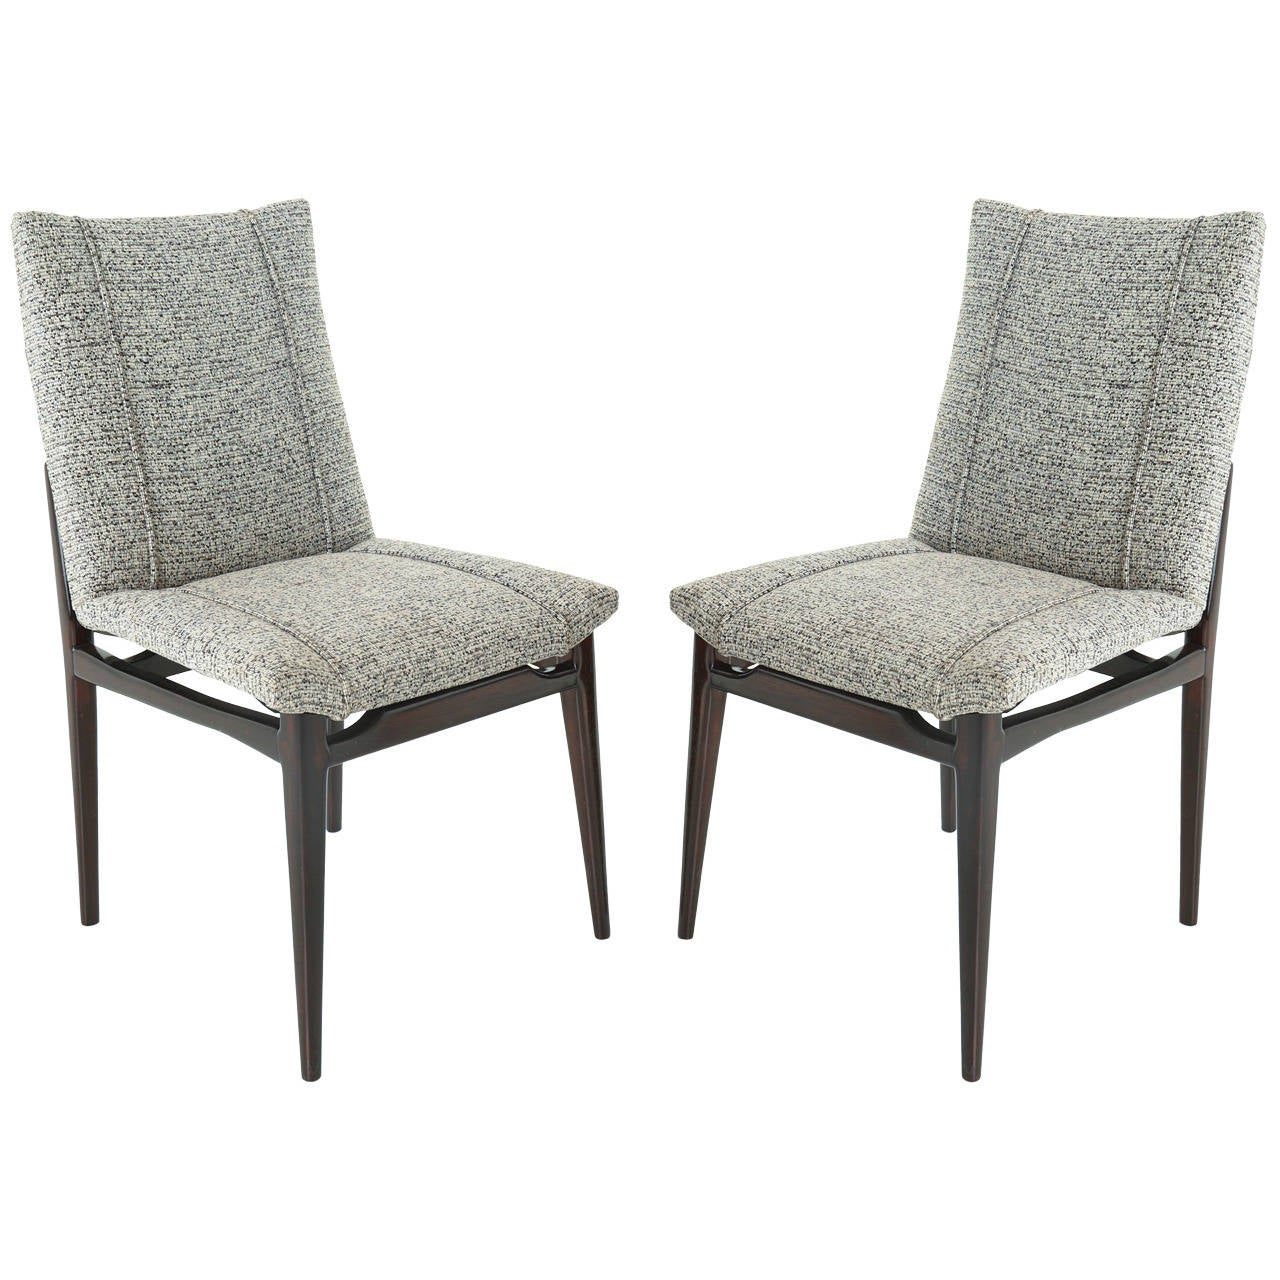 Mid-Century Brazilian Side Chairs with Gray Upholstery